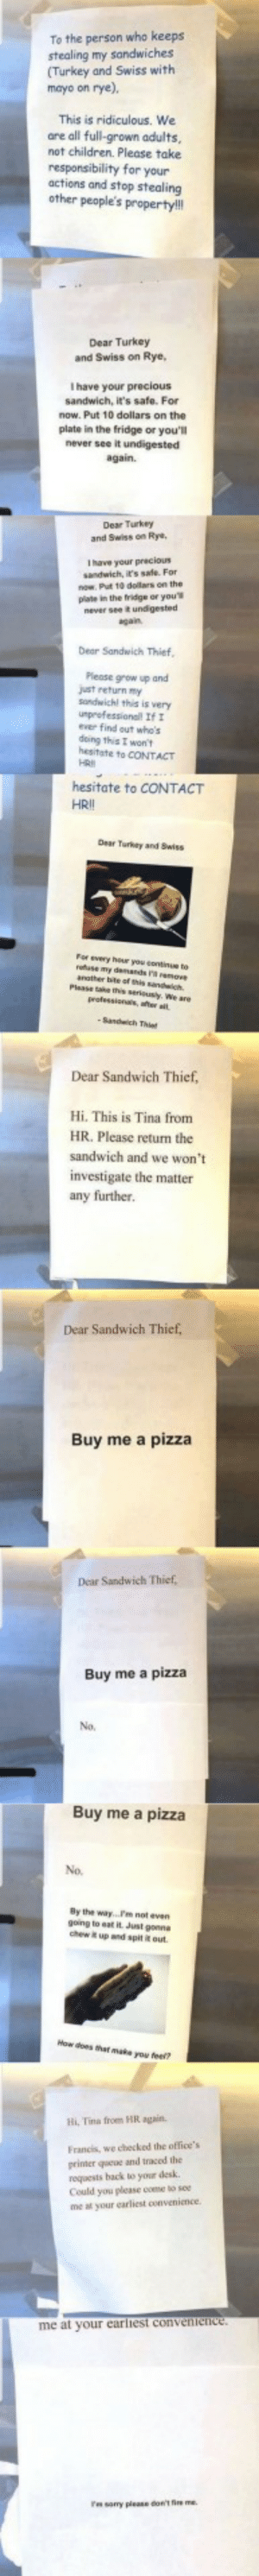 This post is a long boi via /r/memes http://bit.ly/2Qni07m: To the person who keeps  stealing my sandwiches  (Turkey and Swiss with  mayo on rye),  This is ridiculous. We  are all full-grown adults,  not children. Please take  responsibility for your  actions and stop stealing  other people's property!  Dear Turkey  and Swiss on Rye,  I have your precious  sandwich, it's safe. For  now. Put 10 dollars on the  plate in the fridge or you'll  never see it undigested  again.  Dear Turkey  and Swiss on Rye  Ihave your precious  sandwich, it's safe. For  now Put 10 dolars on the  plate in the fridge or you'  never see it undigested  again  Dear Sandwich Thief  Please grow up and  just return my  sandwichl this is very  unprofessionall If  ever find out who's  deing this I won't  hesitate to CONTACT  HRI  hesitate to CONTACT  HRII  Dear Turkey and Saiss  For every haur you oine to  smy demands remeve  anather bite of is sandwich.  Plase taehis seriously, We are  gefessionl,aer  Sandh Thi  Dear Sandwich Thief,  Hi. This is Tina from  HR. Please return the  sandwich and we won't  investigate the matter  any further.  Dear Sandwich Thief,  Buy me a pizza  Dear Sandwich Thief  Buy me a pizza  No.  Buy me a pizza  No.  By the way...Pm not even-  going to eat it Just gonna  chew up and spit t out  How does that make you feef?  Hi, Tina from HR again.  Francis, we checked the office's  primer qucue and traced the  requests hack to your deska  Could you please come to see  me at your carliest convenience  me at your earlhest convenience  samy please don't ie me. This post is a long boi via /r/memes http://bit.ly/2Qni07m